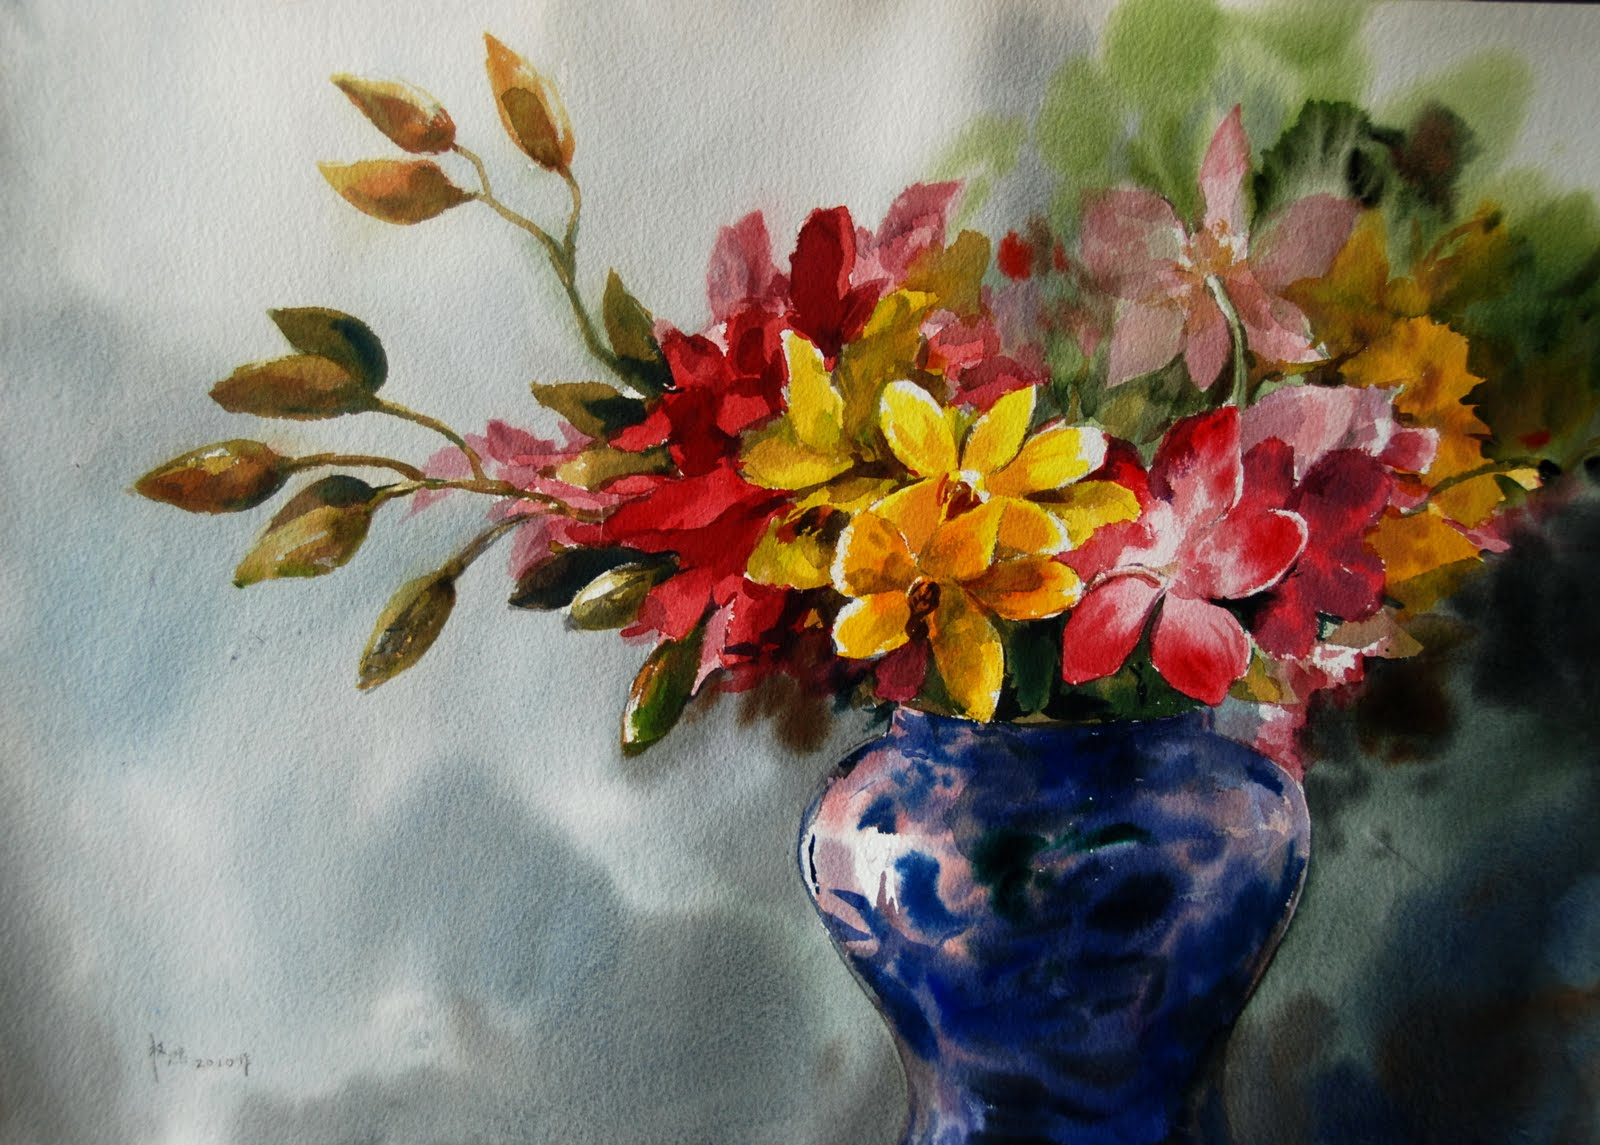 Famous Watercolor Paintings - Bing images